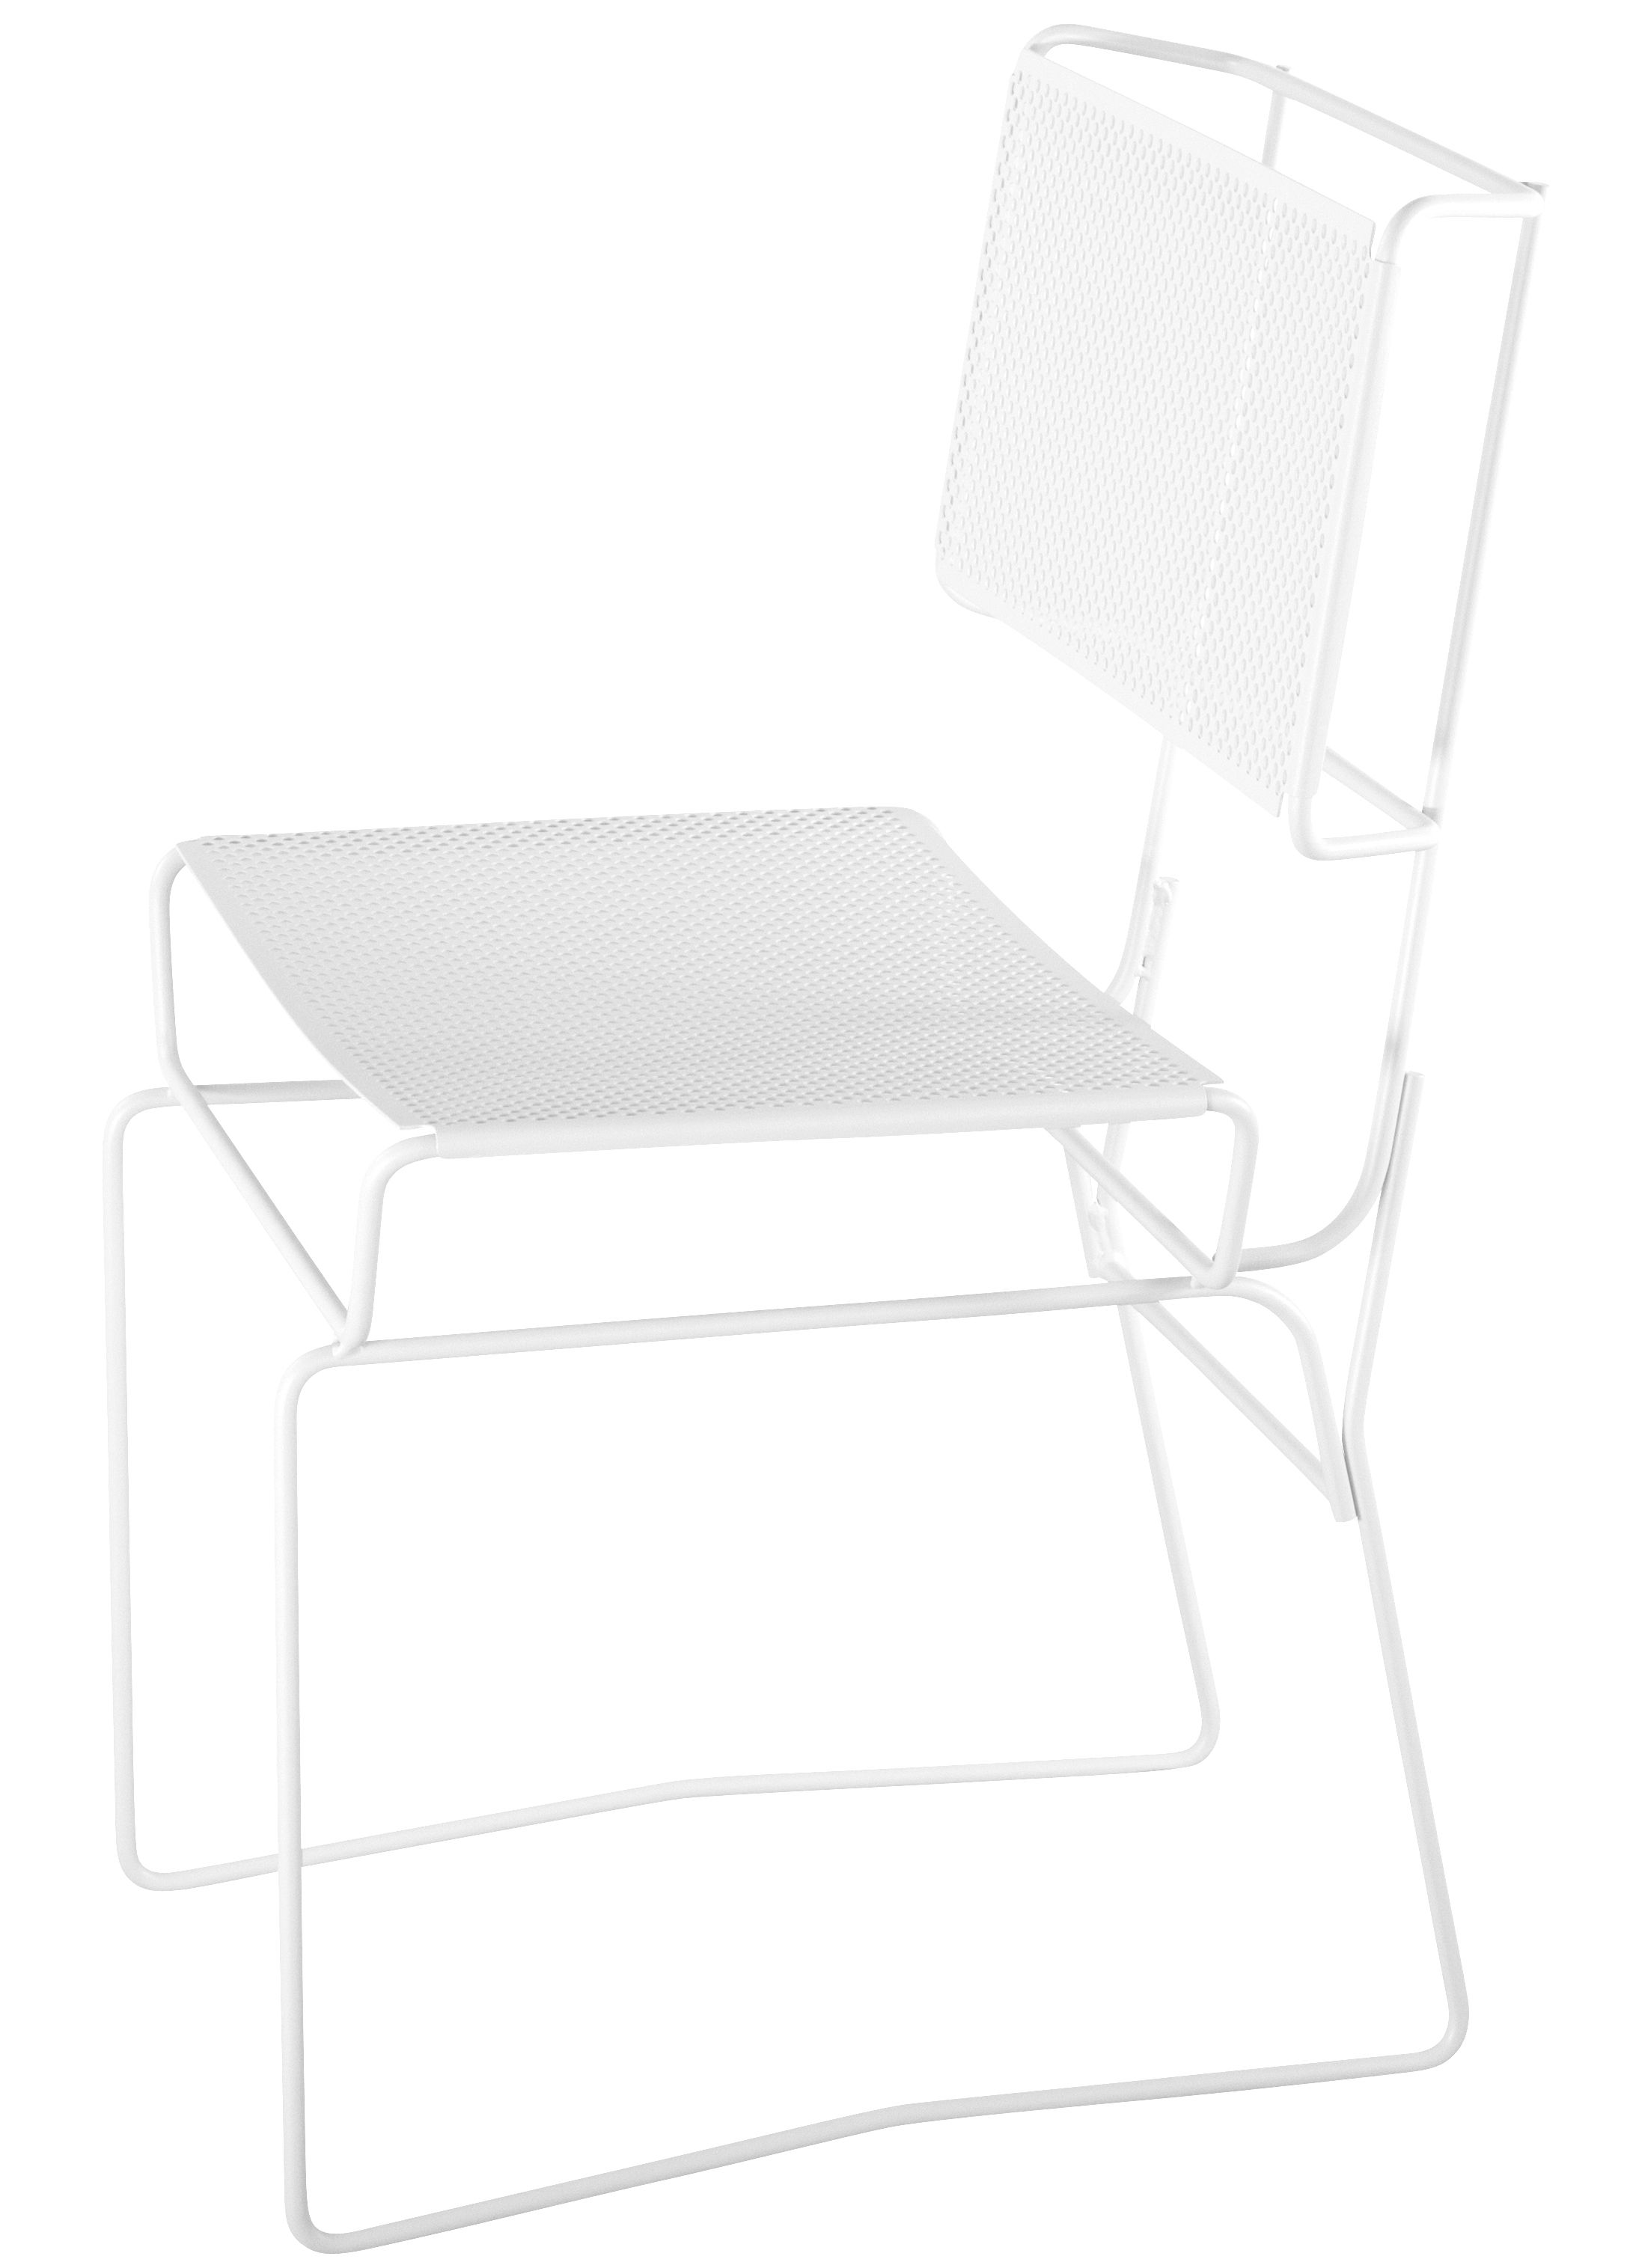 Furniture - Chairs - Fil Chair by AA-New Design - White - Epoxy lacquered steel